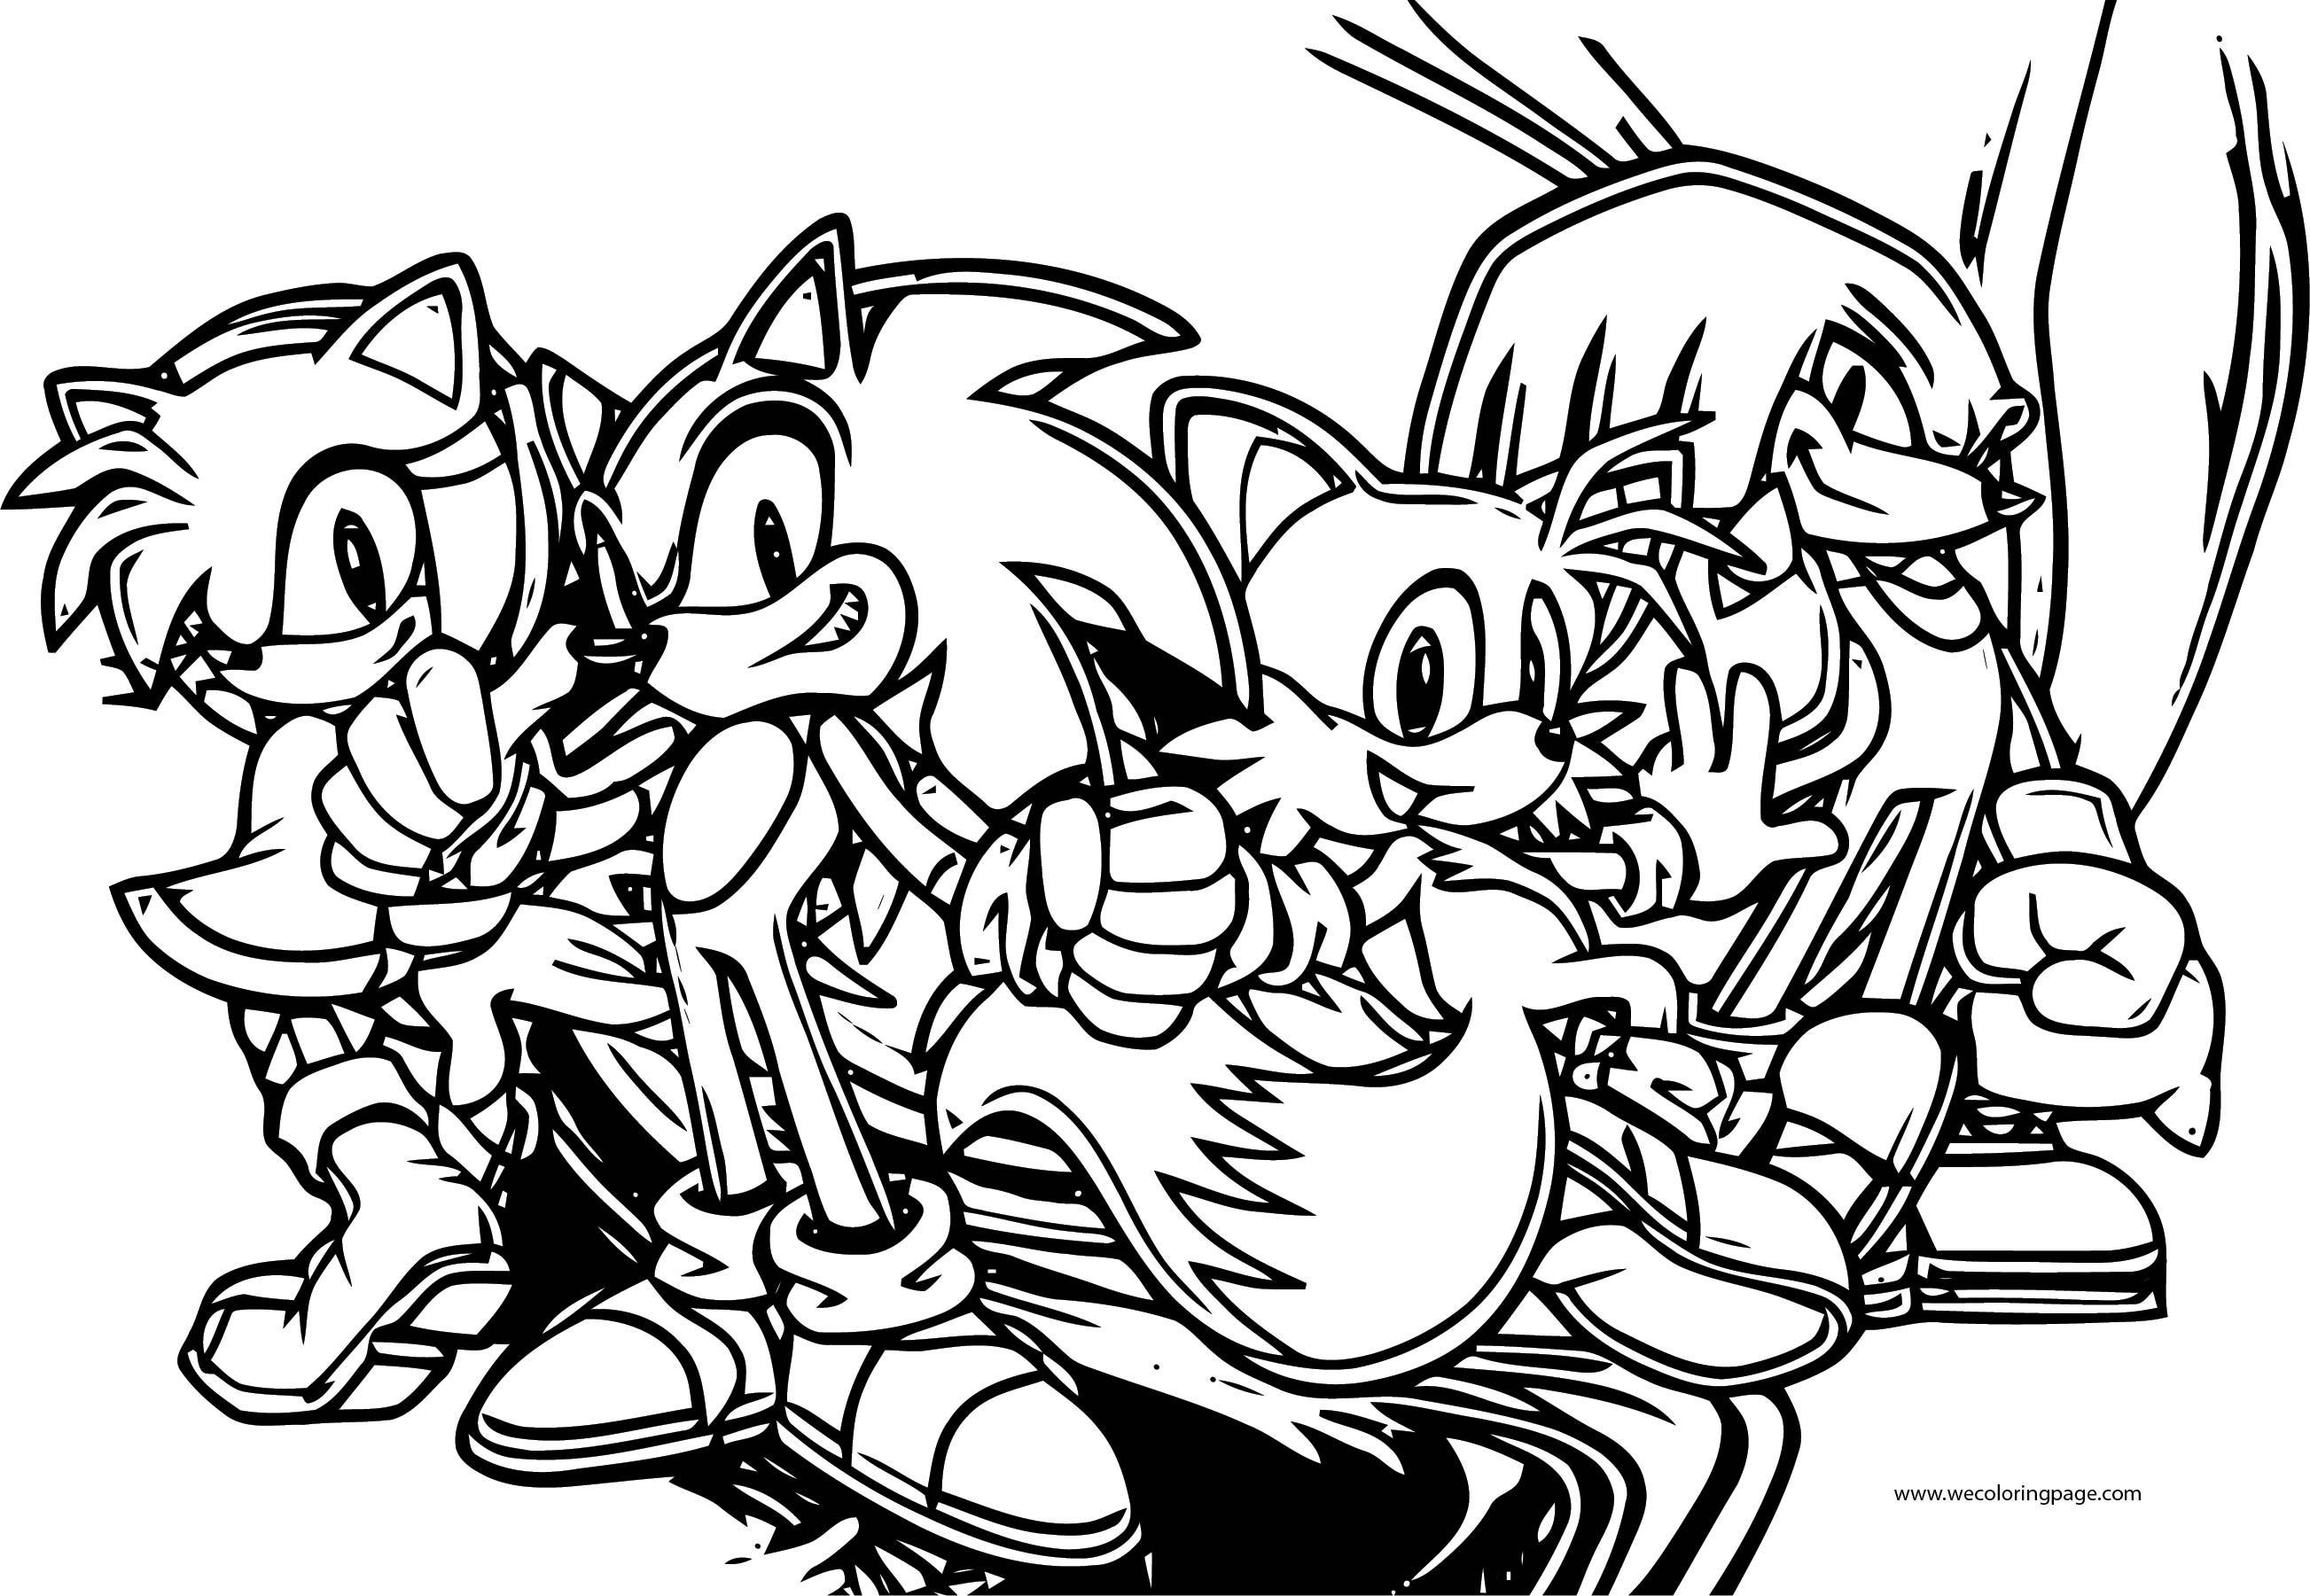 Sonic The Hedgehog With Friends Coloring Page